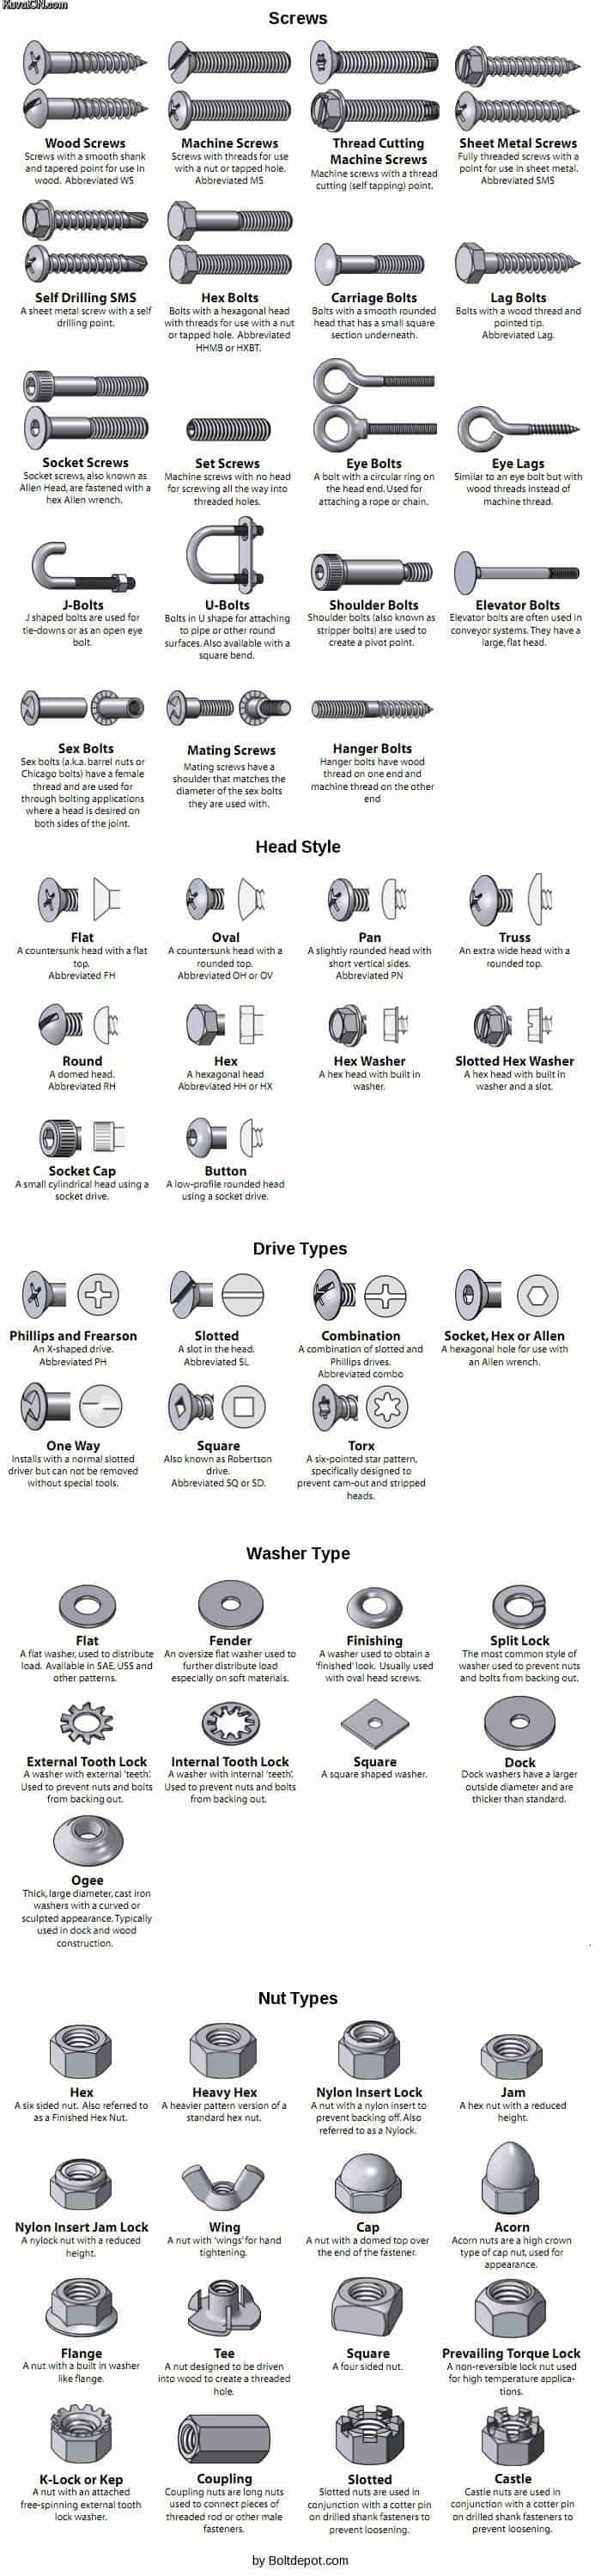 Types of Screws and Bolts [Guide] [Infographic] | Daily Infographic